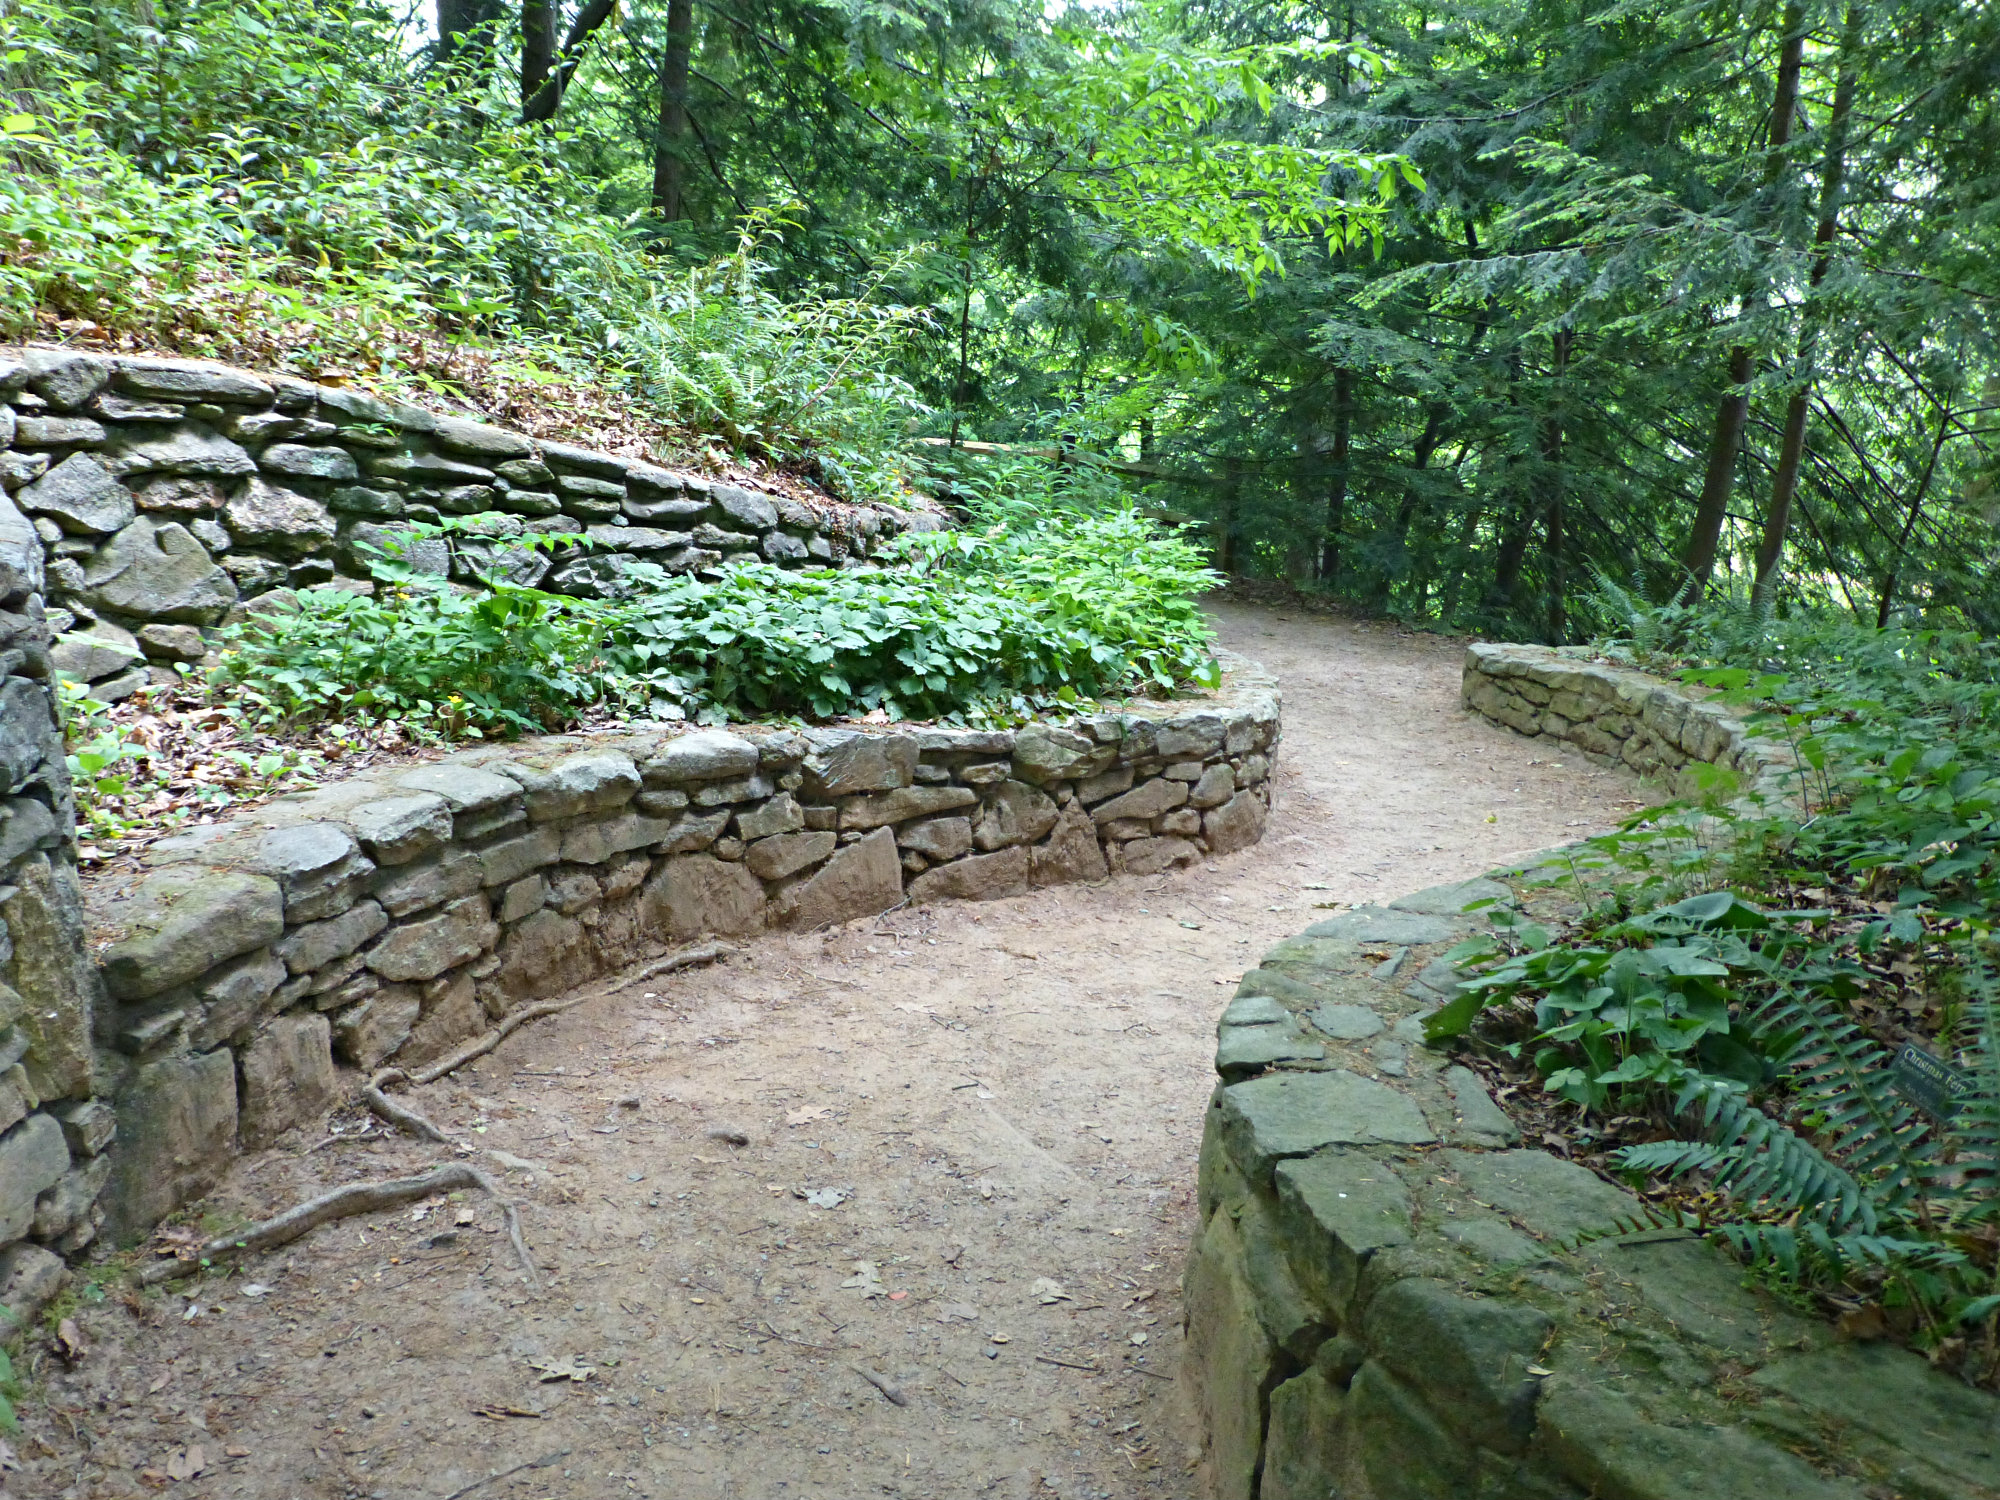 Dirt path in the woods lined with a short stone wall with more terraced stone walls on one side and leafy plants on the walls